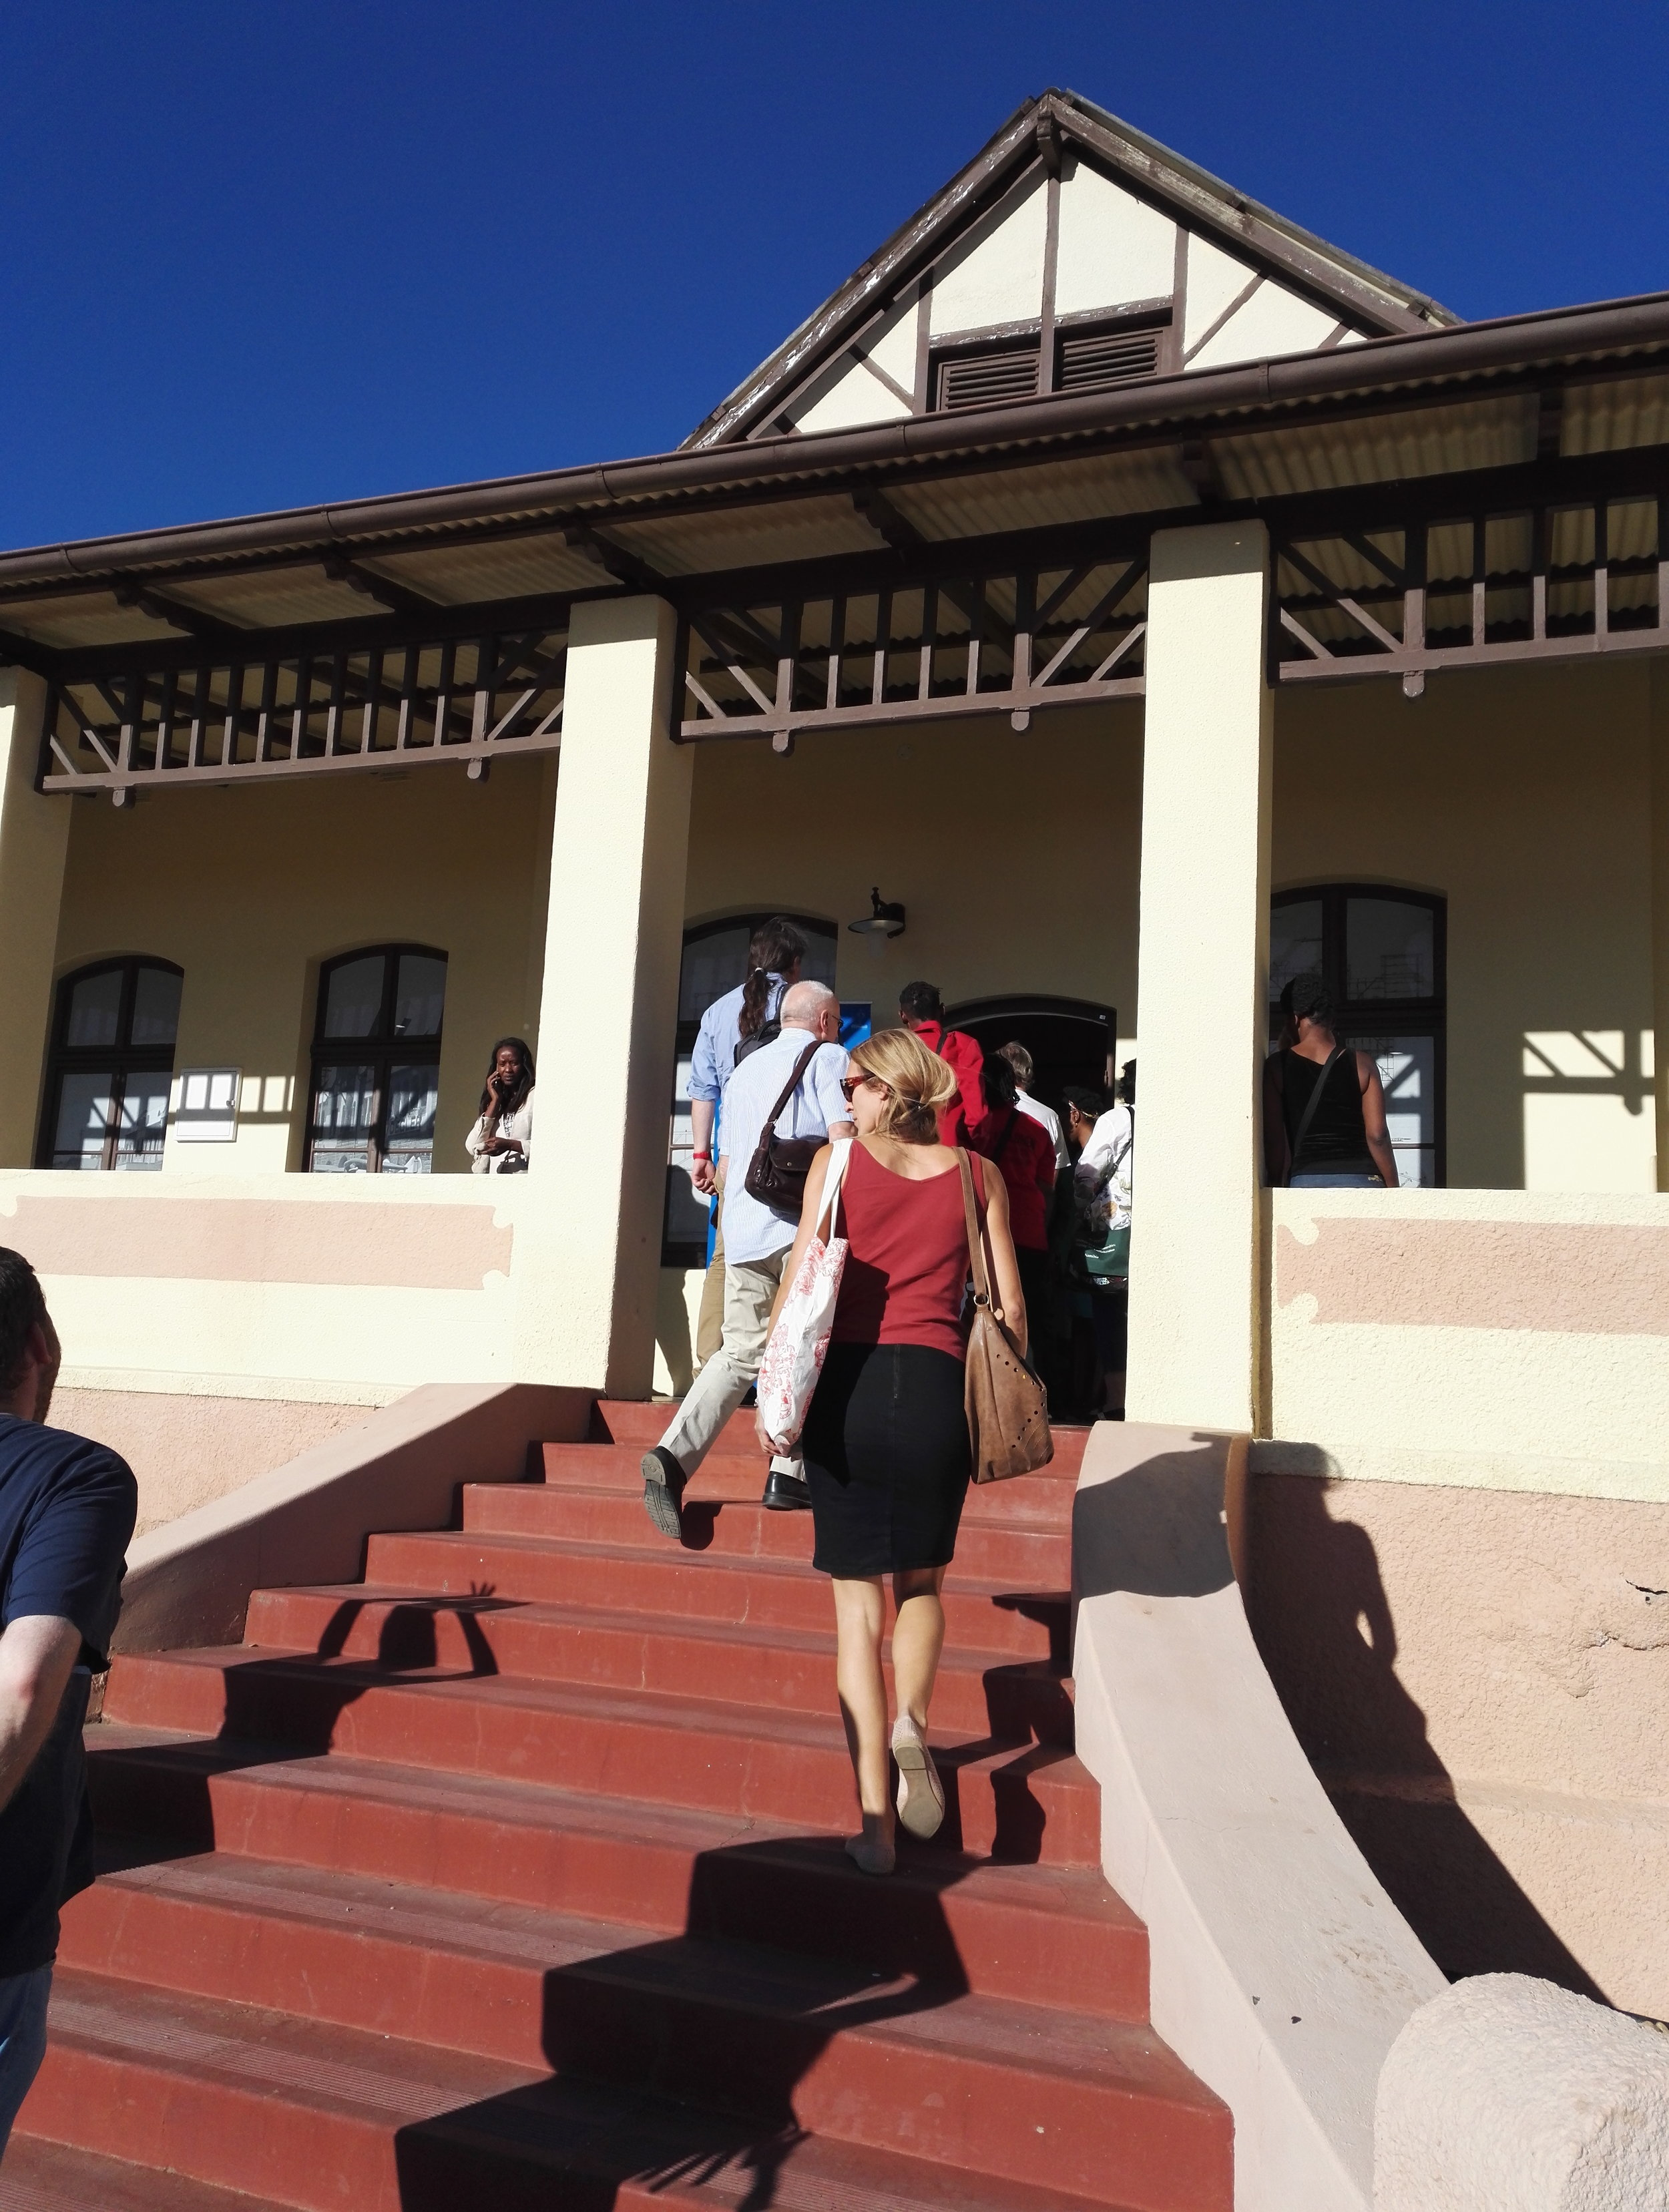 Windhoek City Museum